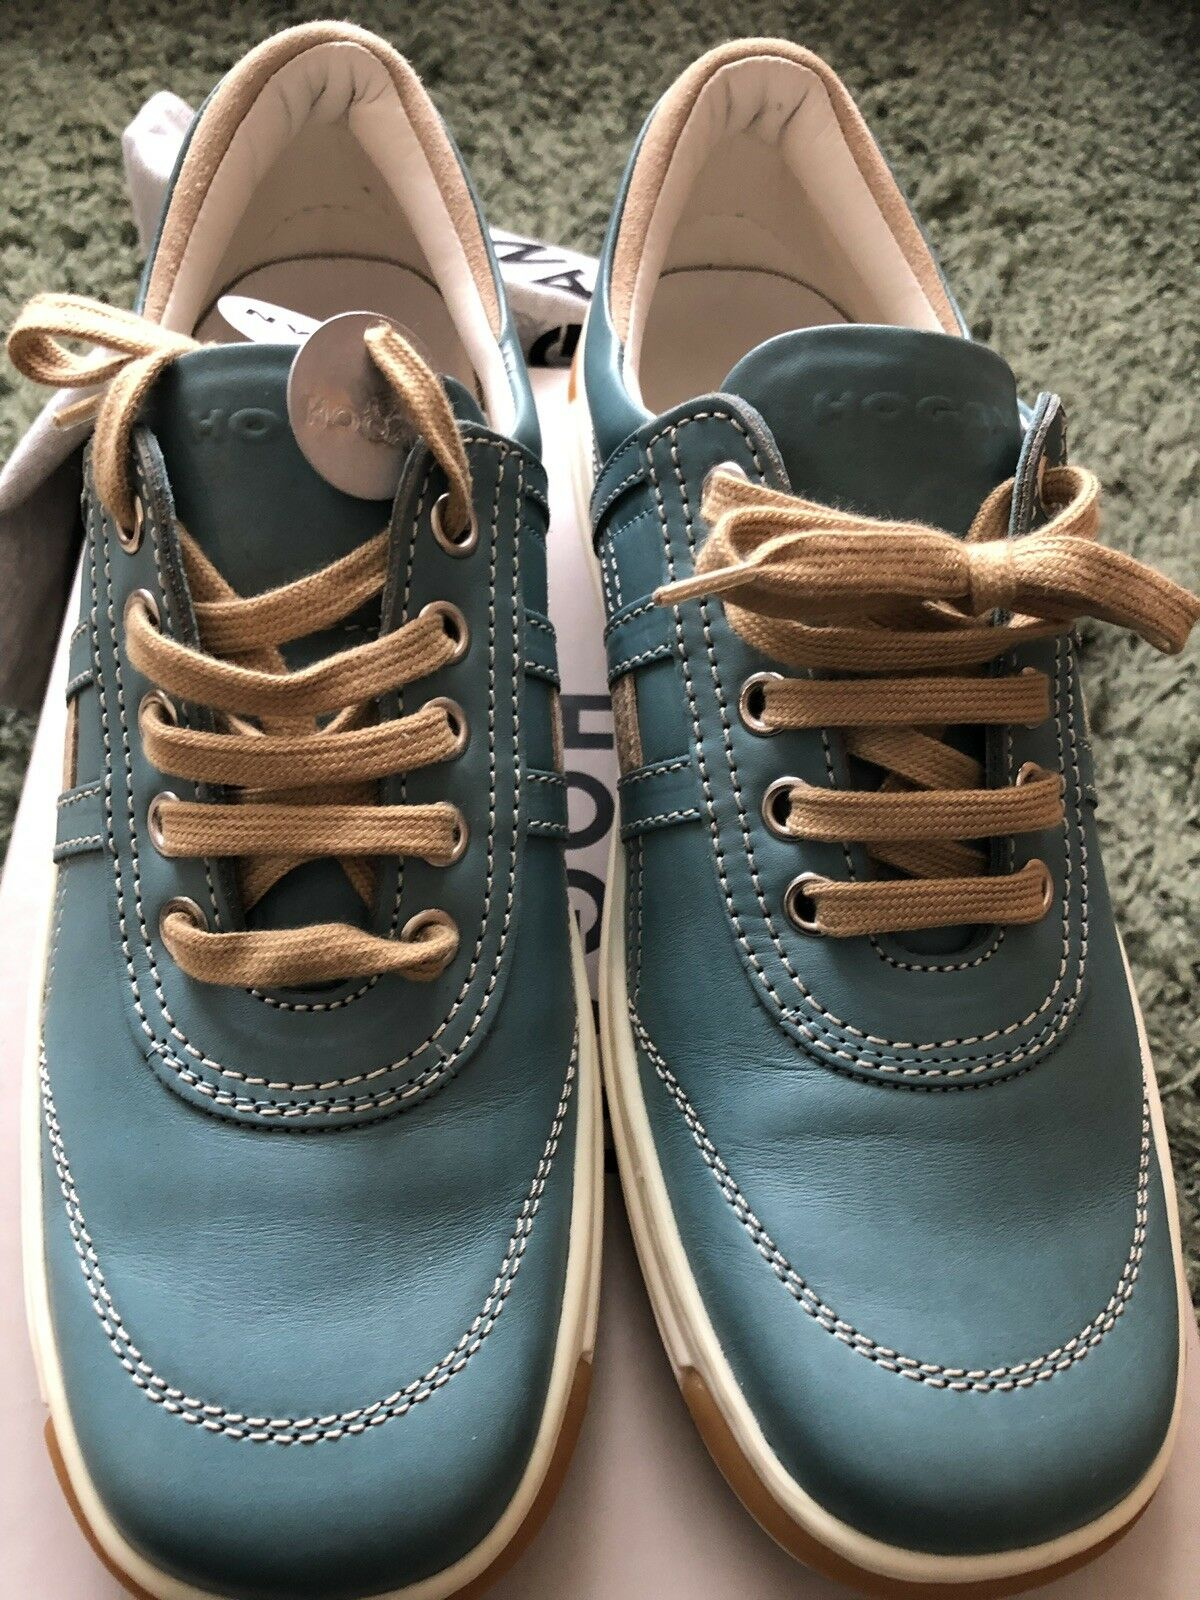 Hogan Womens Fondo Preppy leather Lace Up Sneakers Sz 37.5